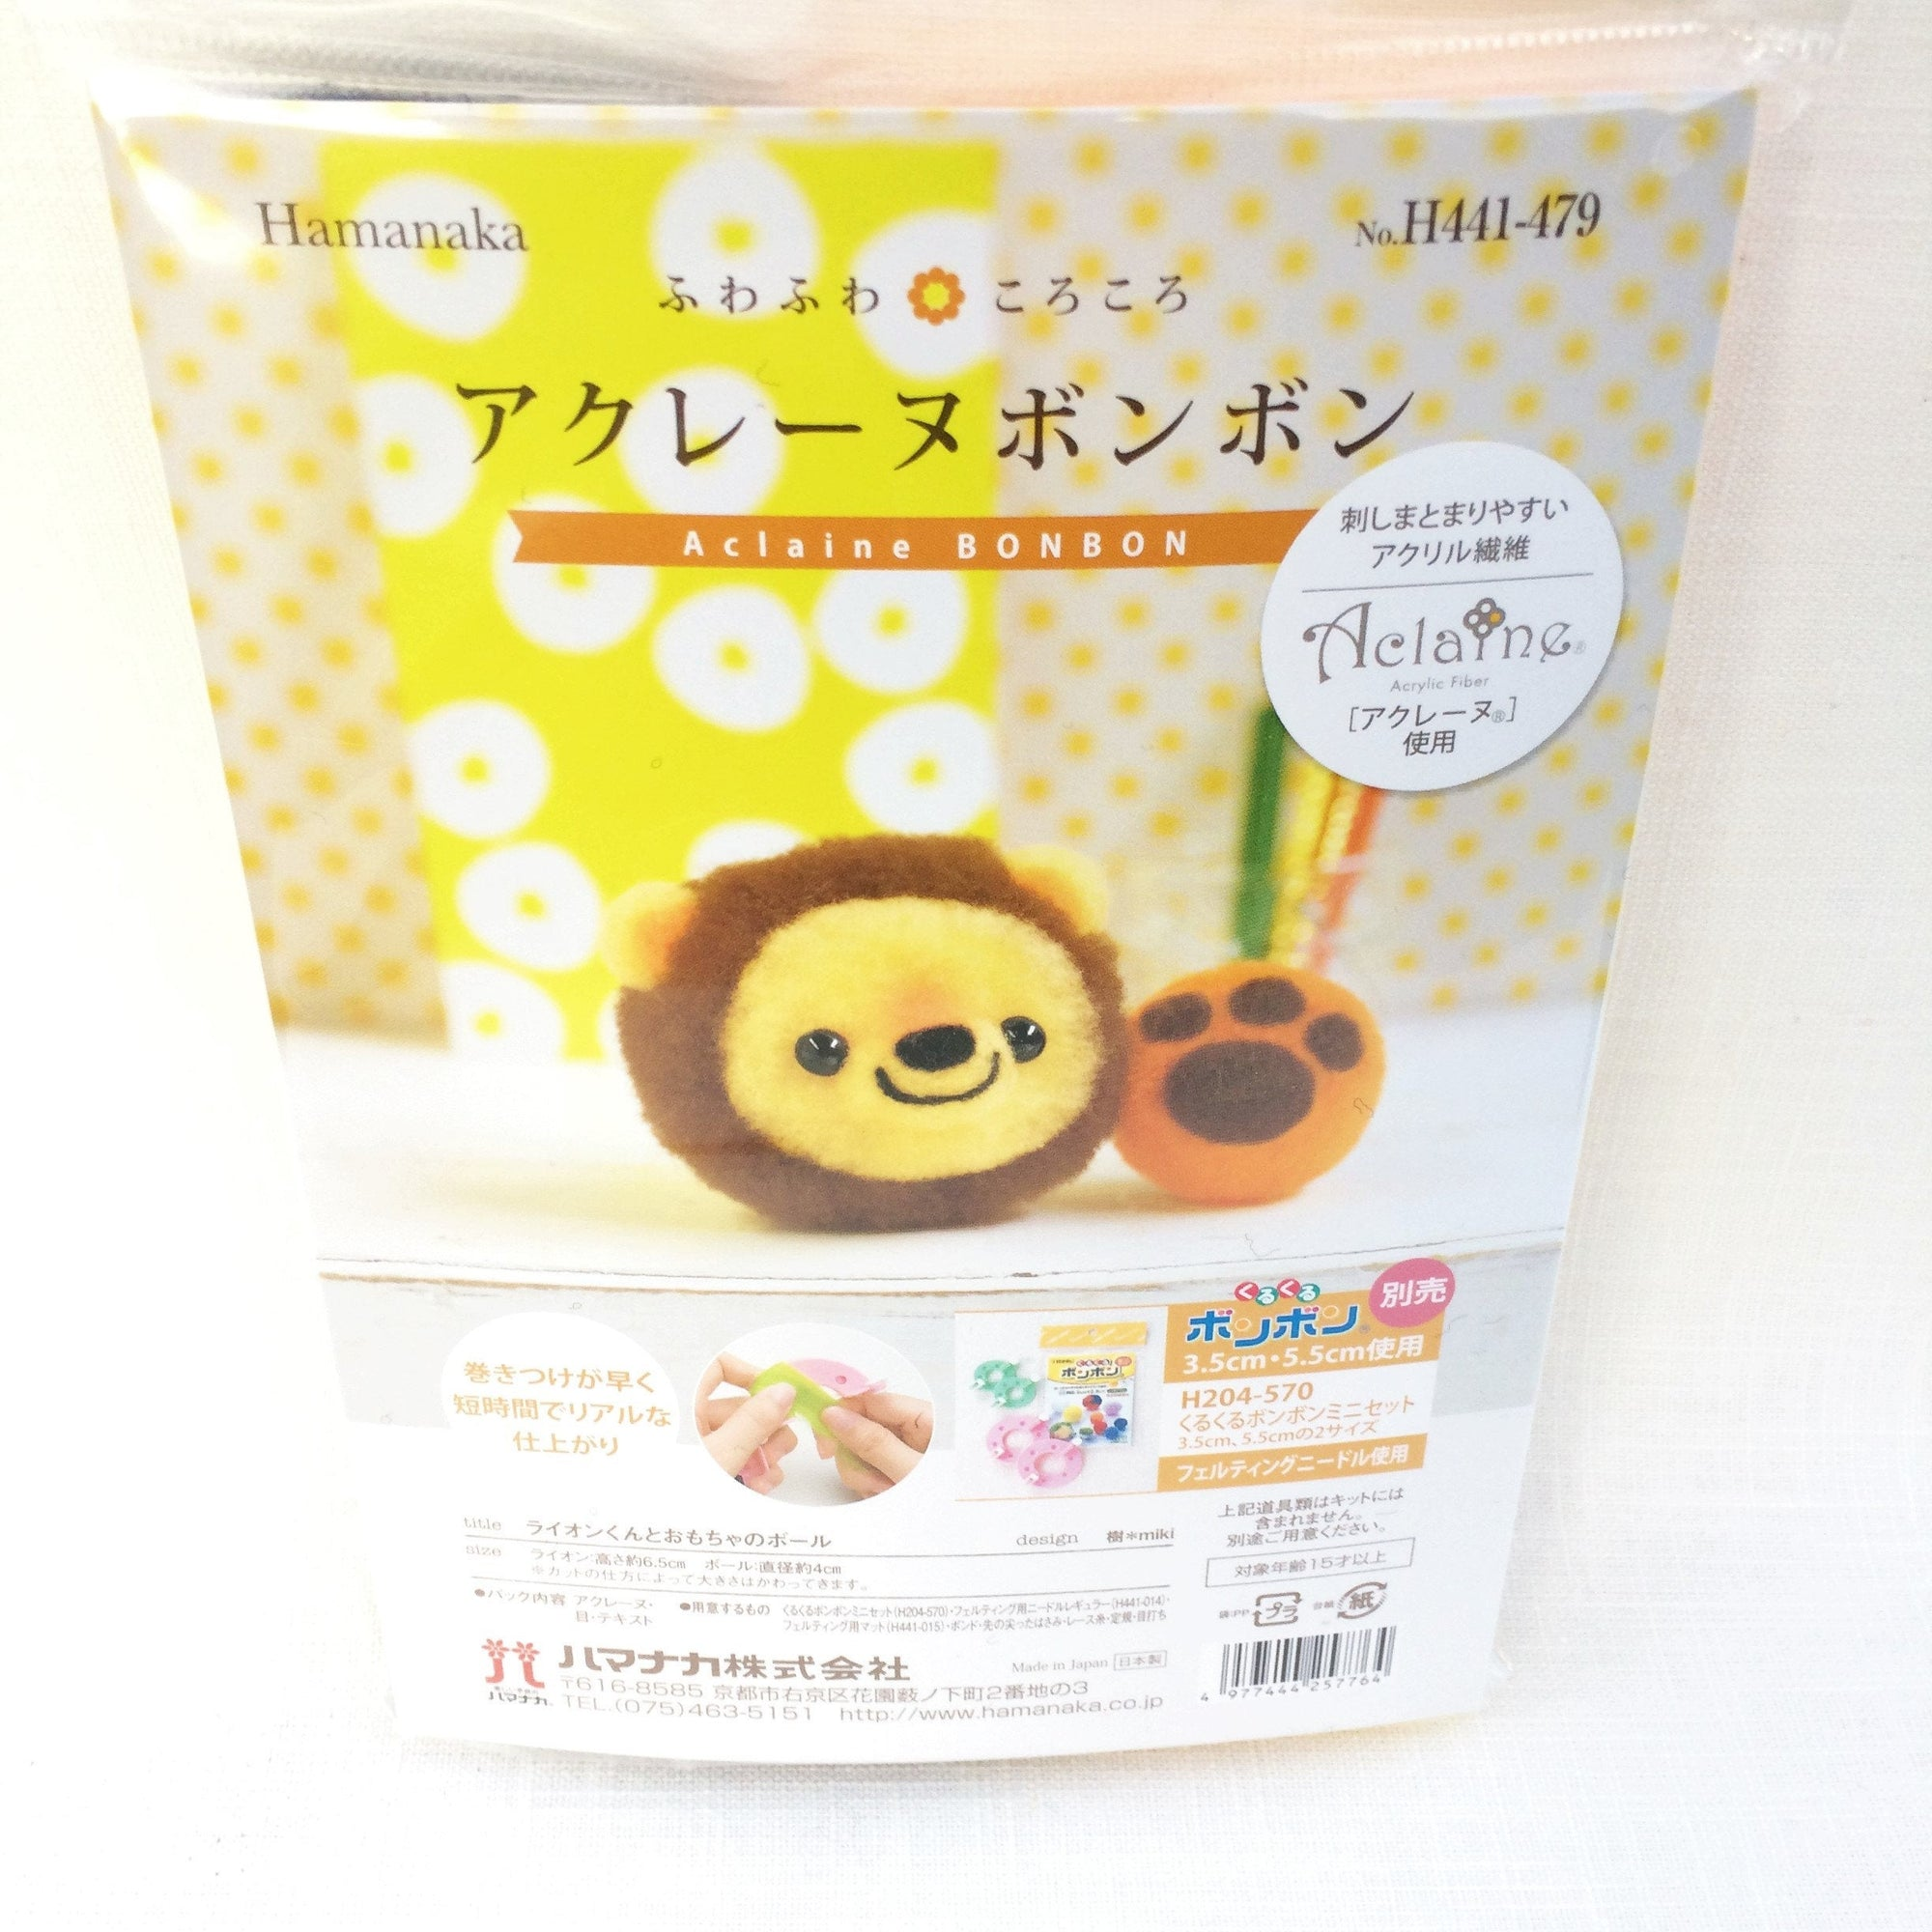 Hamanaka Pom Pom Kit - Lion and Paw